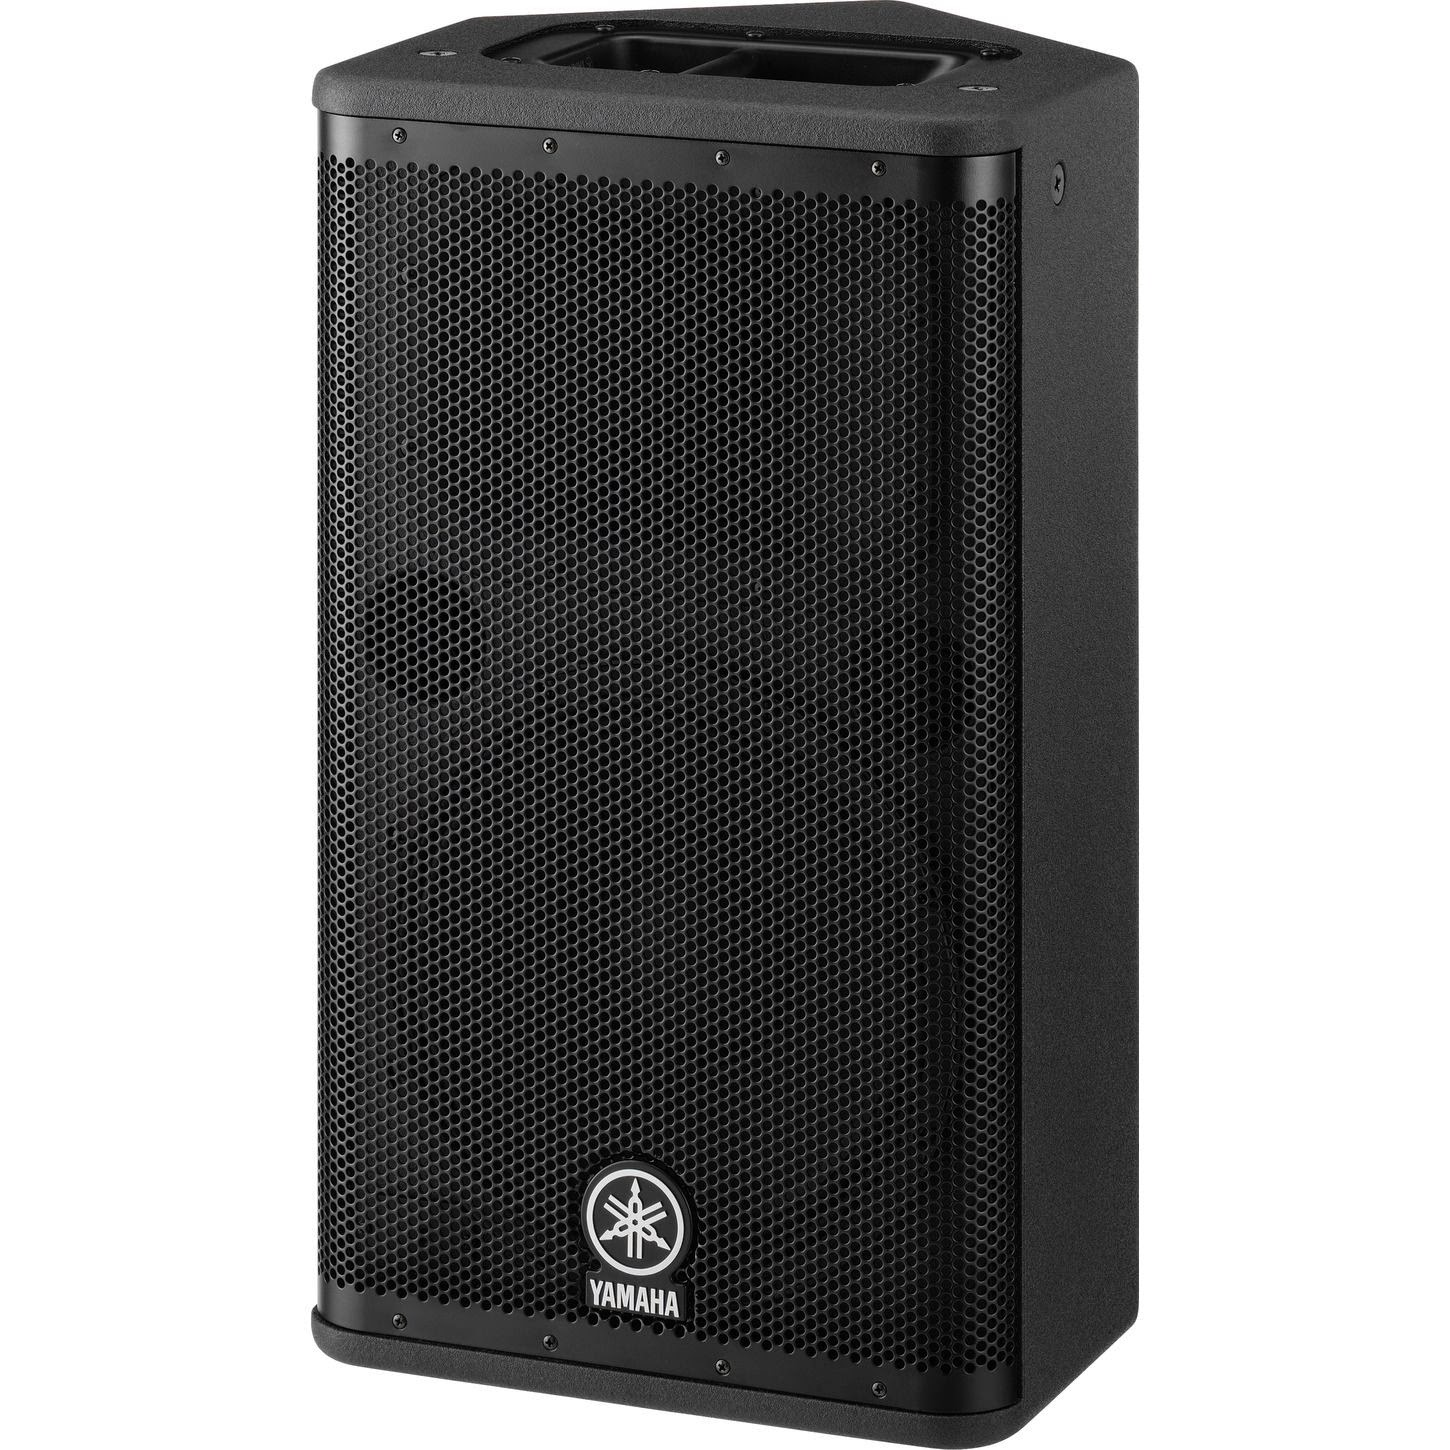 rex and the bass yamaha dsr112 powered speaker review